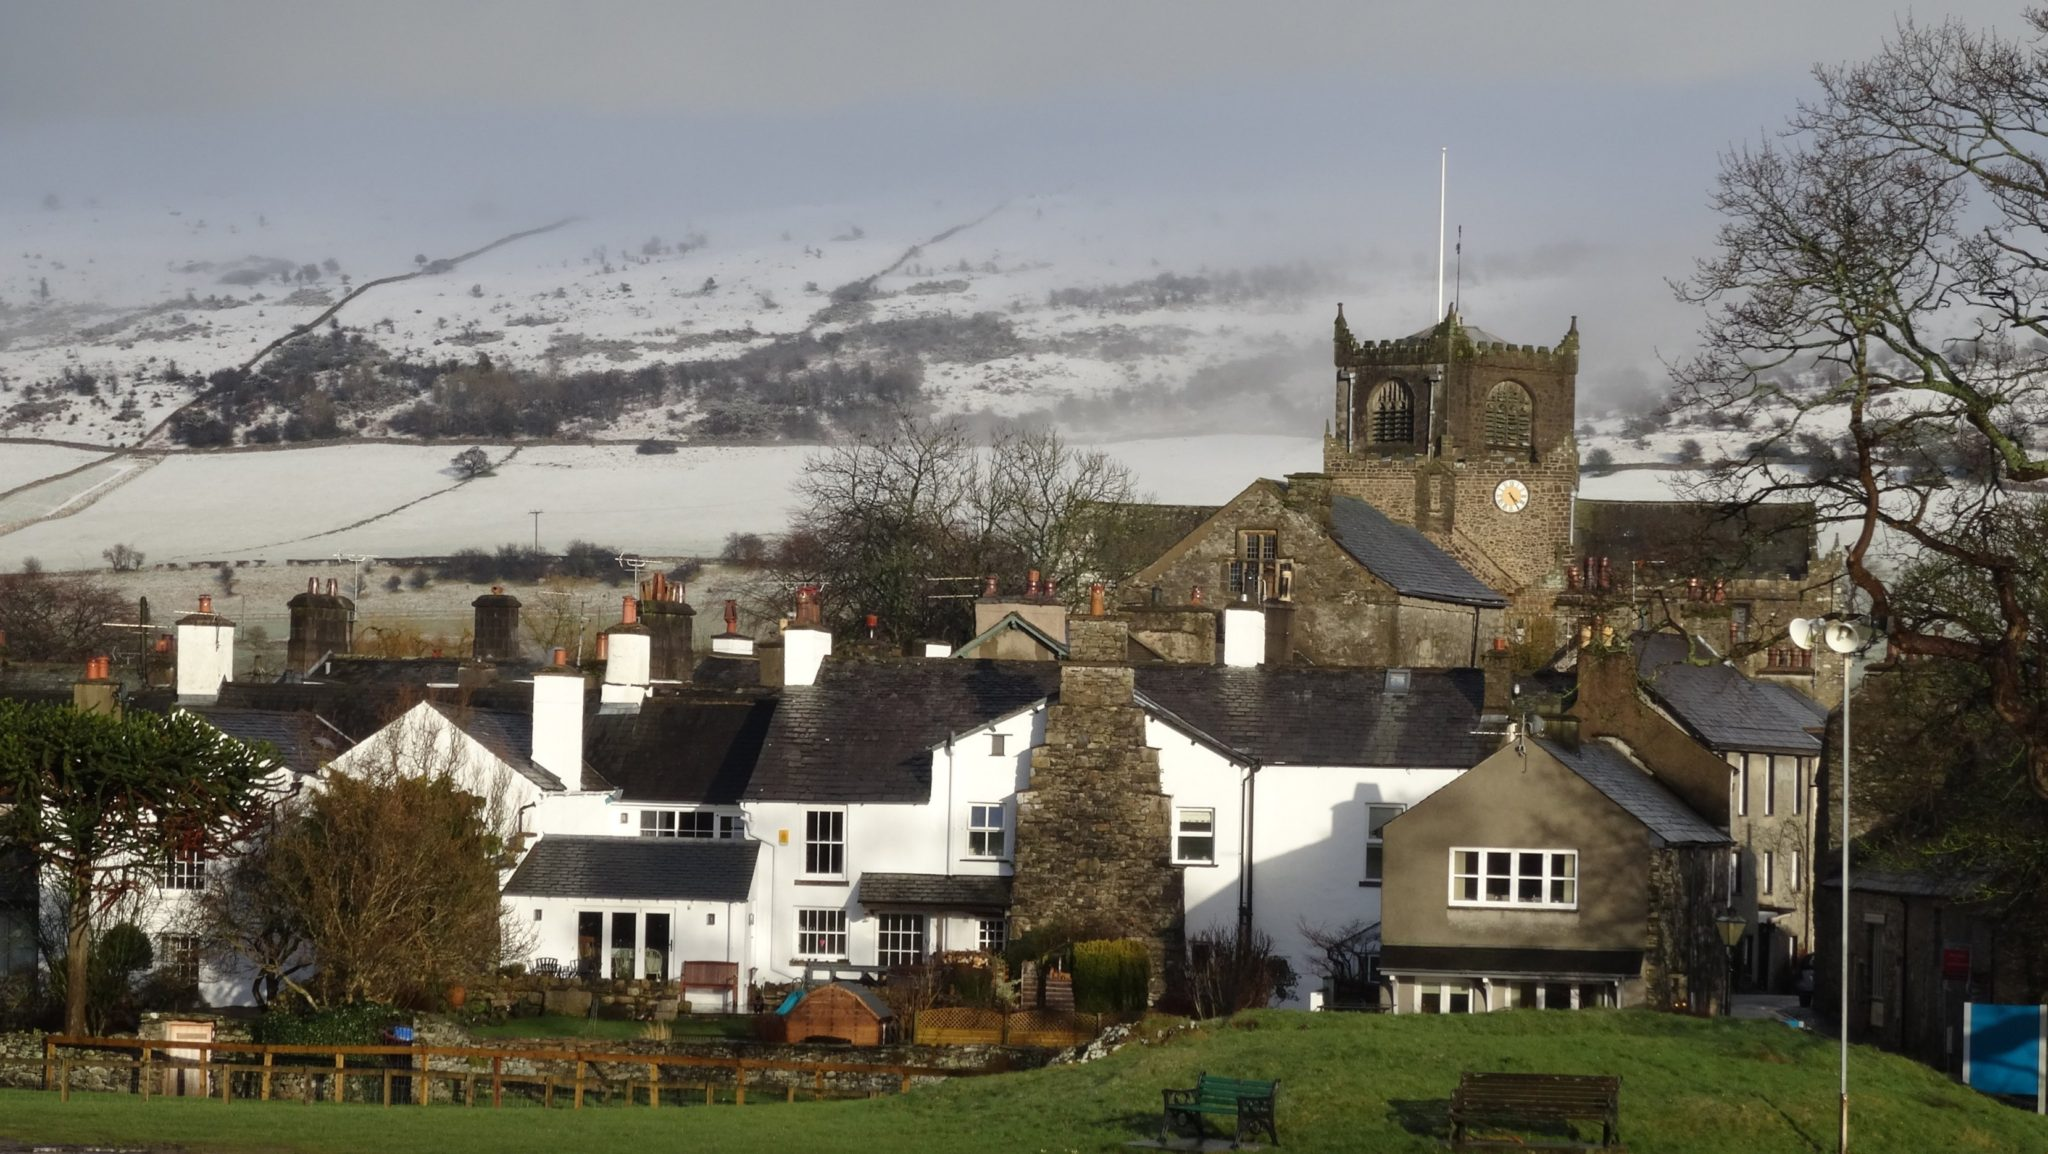 Cartmel – March 1st 2015